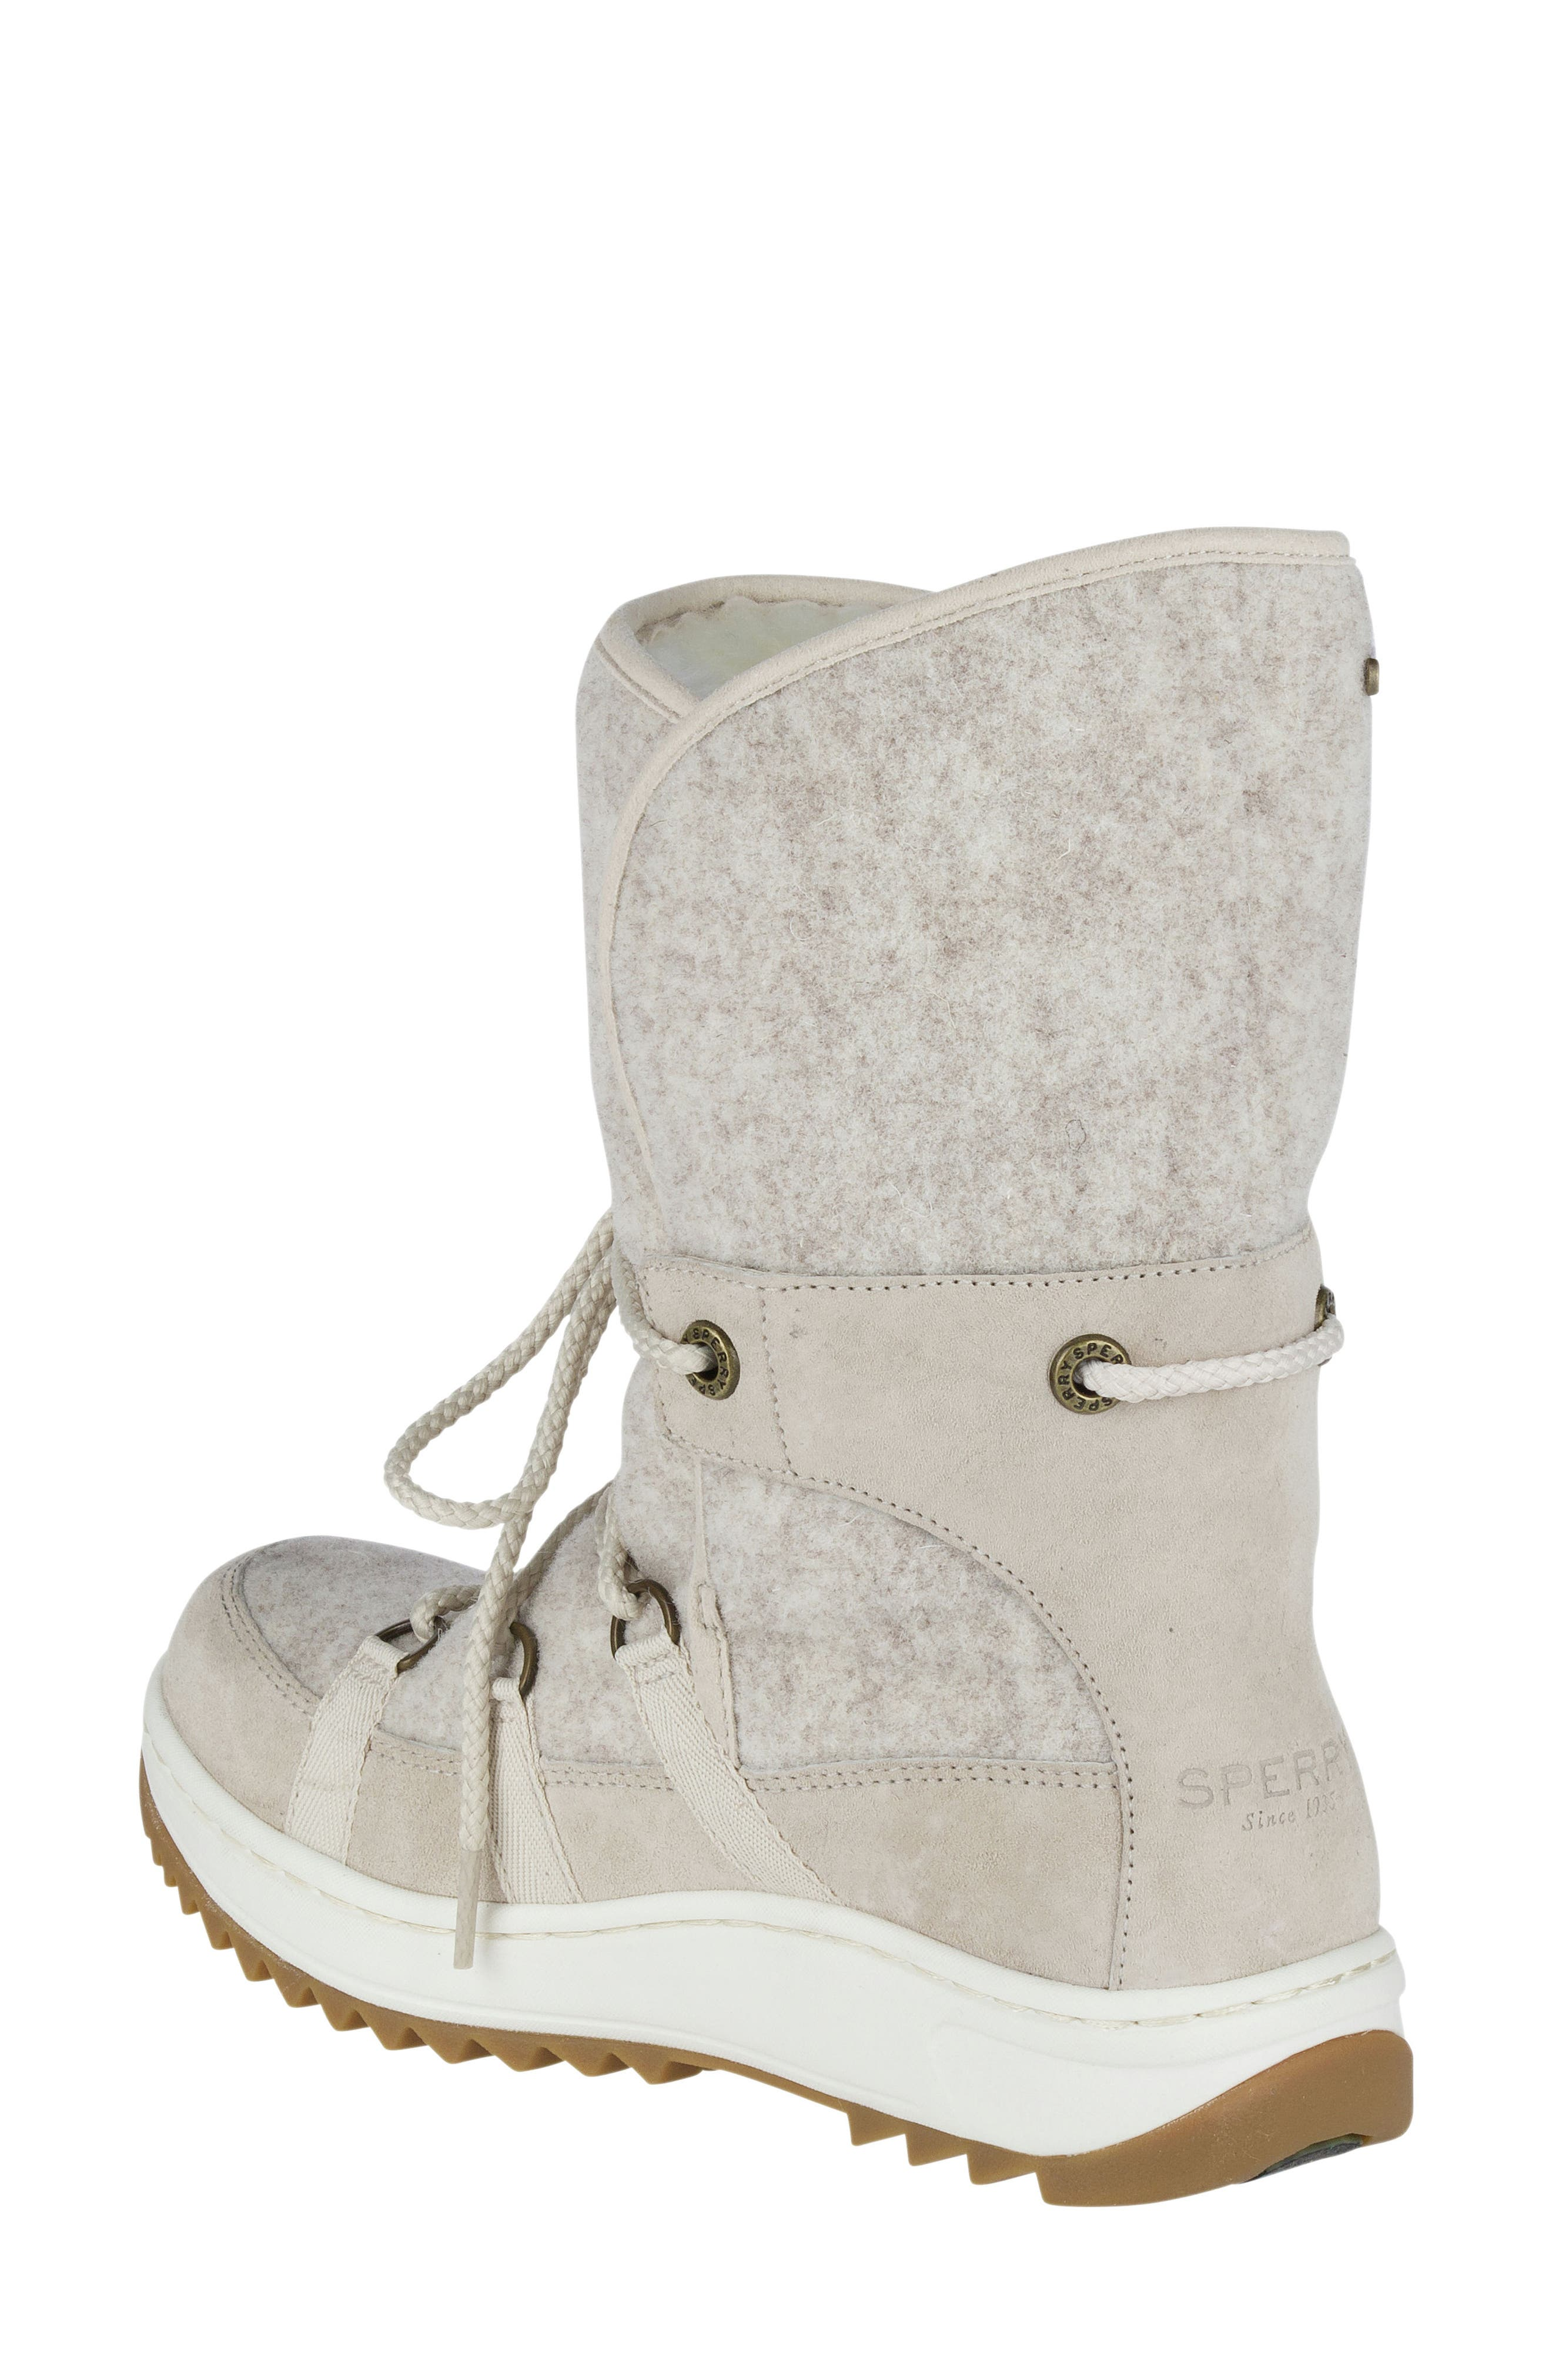 Powder Ice Cap Thinsulate Insulated Water Resistant Boot,                             Alternate thumbnail 2, color,                             Ivory Suede